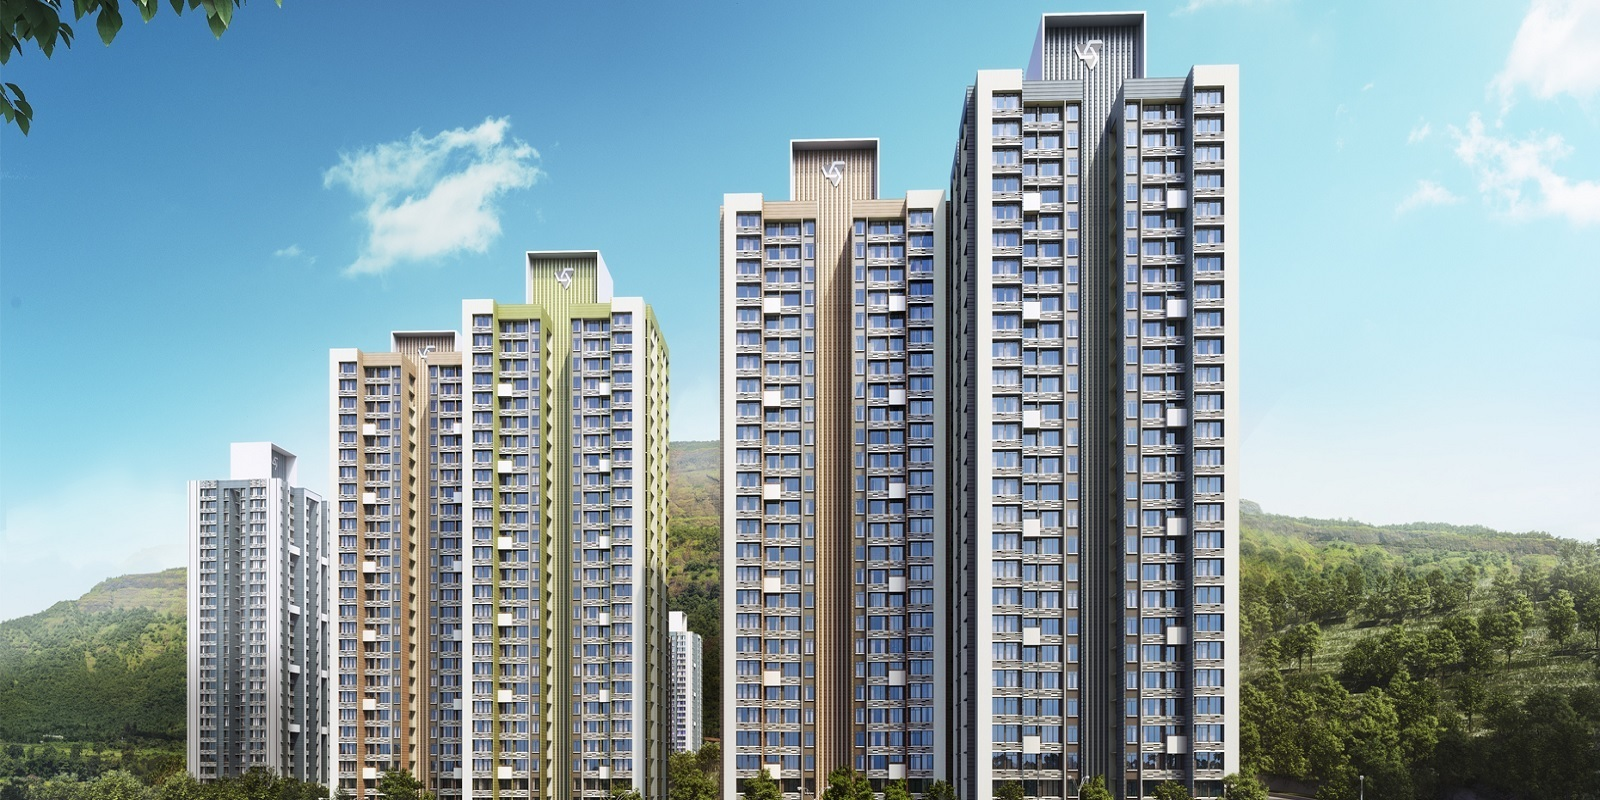 wadhwa wise city south block phase 1 b4 wing f3 project large image2